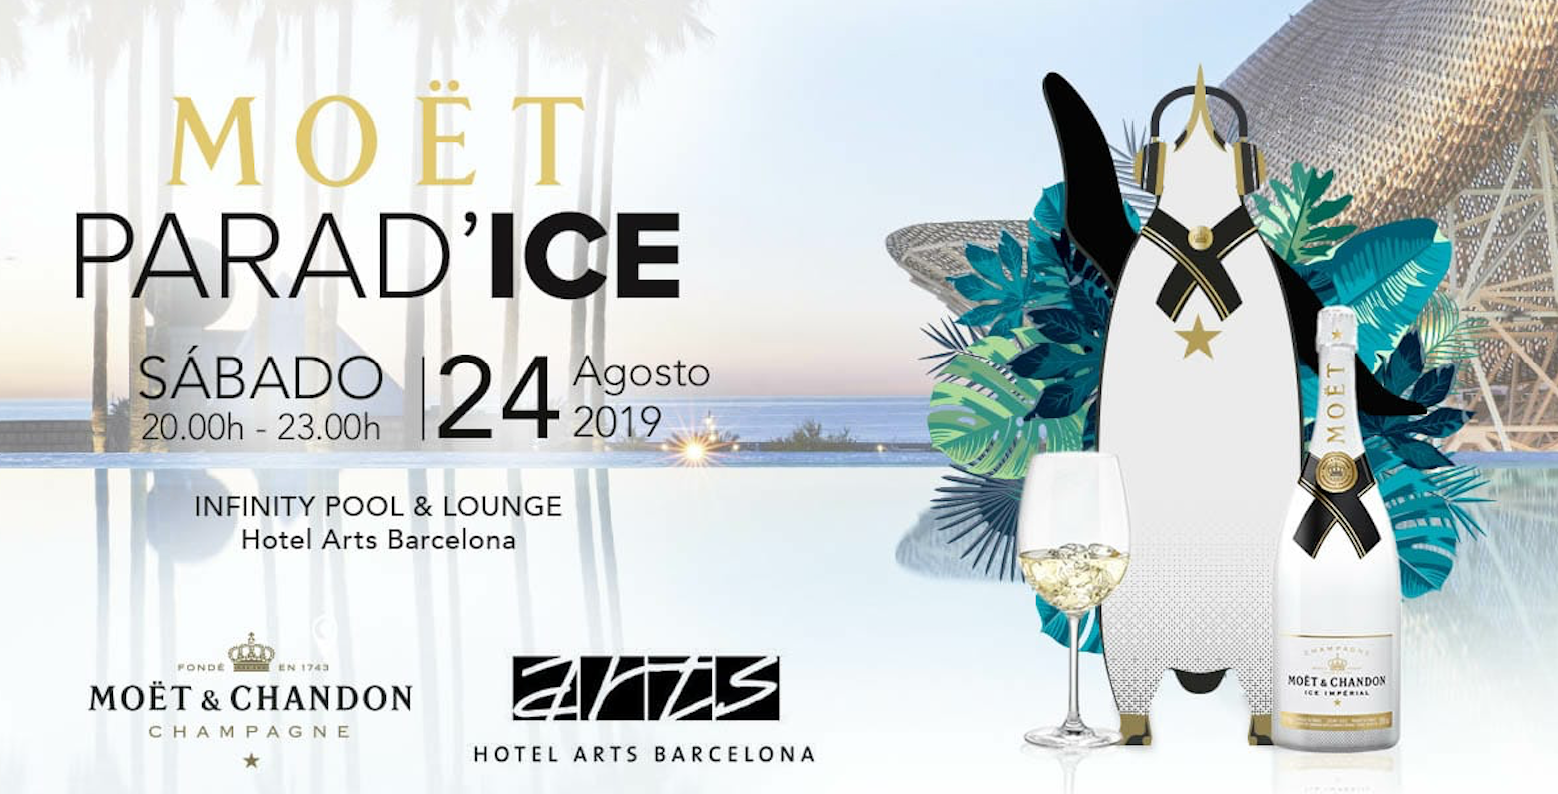 MOËT PARAD'ICE  - Club Hotel Arts